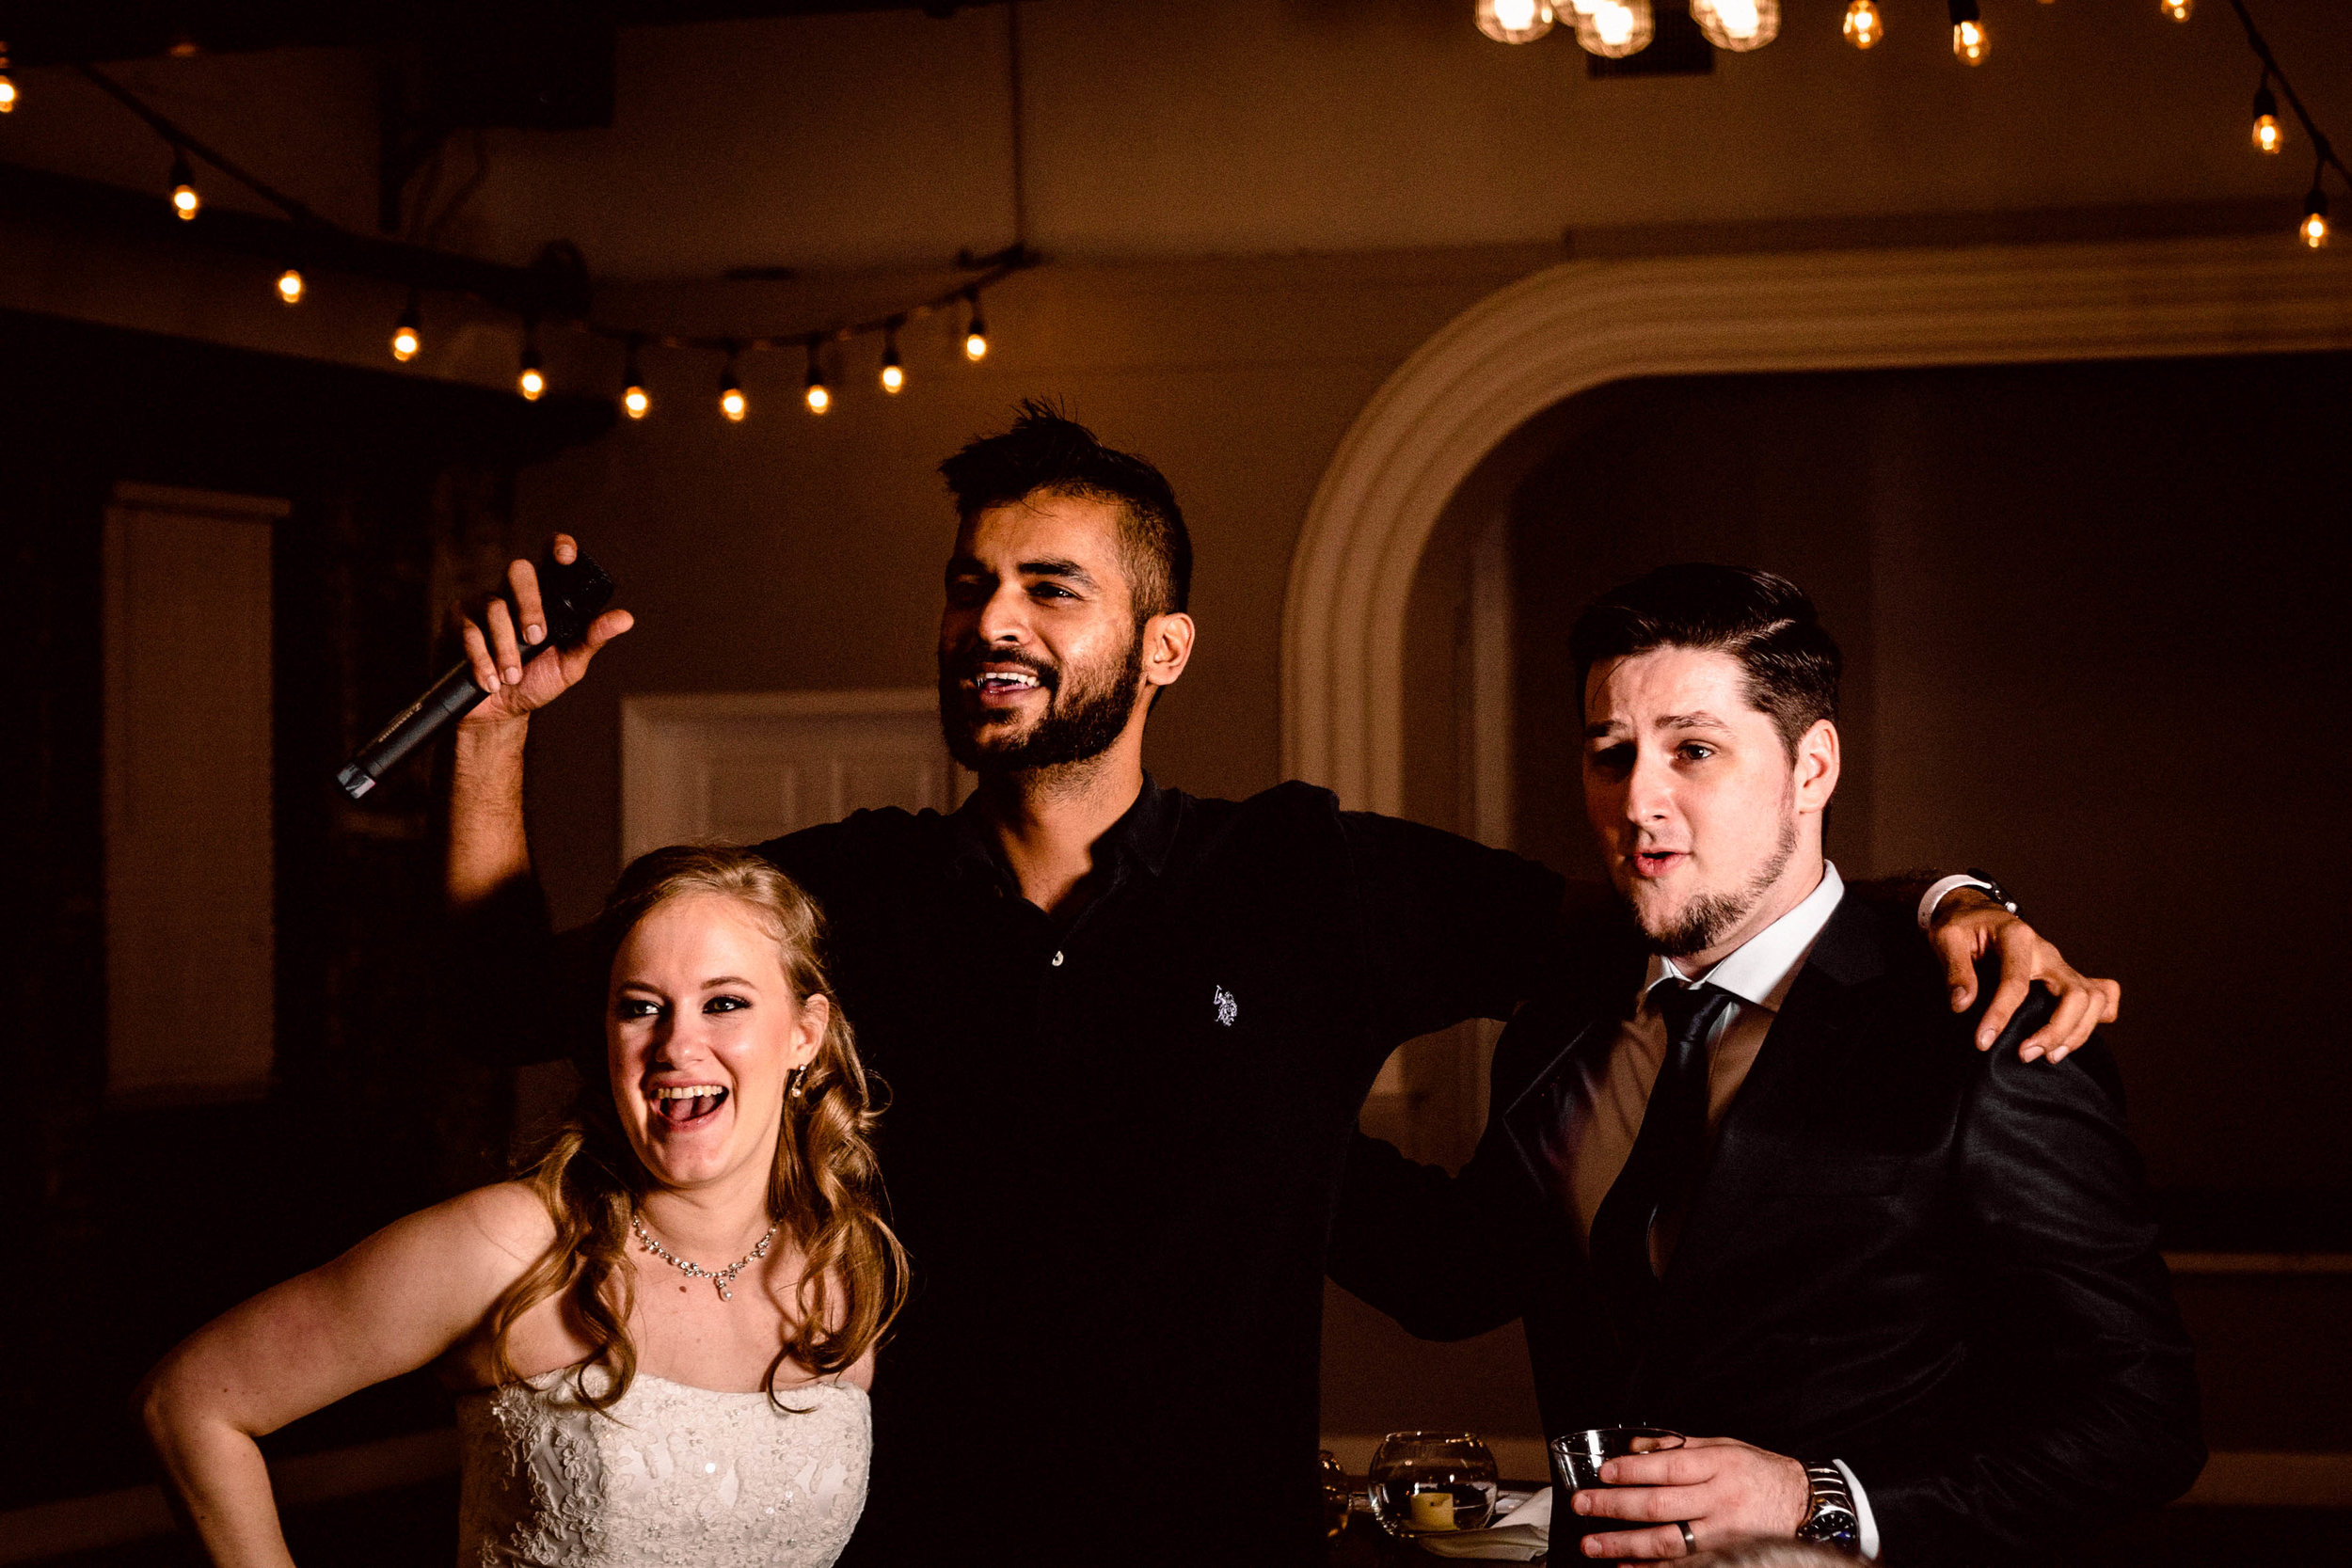 Taking a break to sing with Catherine & Eric on their wedding day.